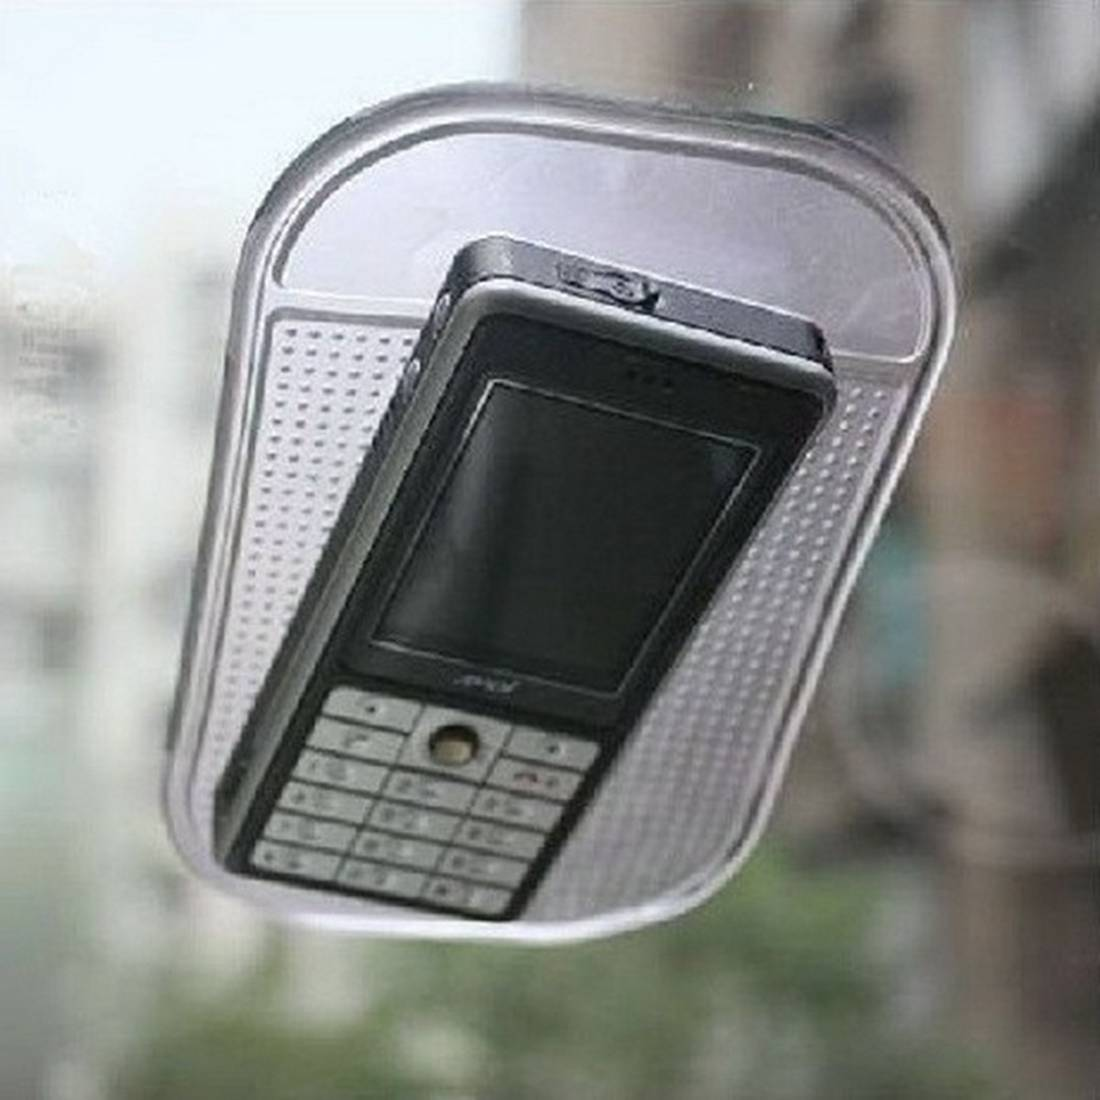 Car dash non dashboard pad phone sticky holder mat car mobile holder anti slip ebay - Notepad holder for car ...